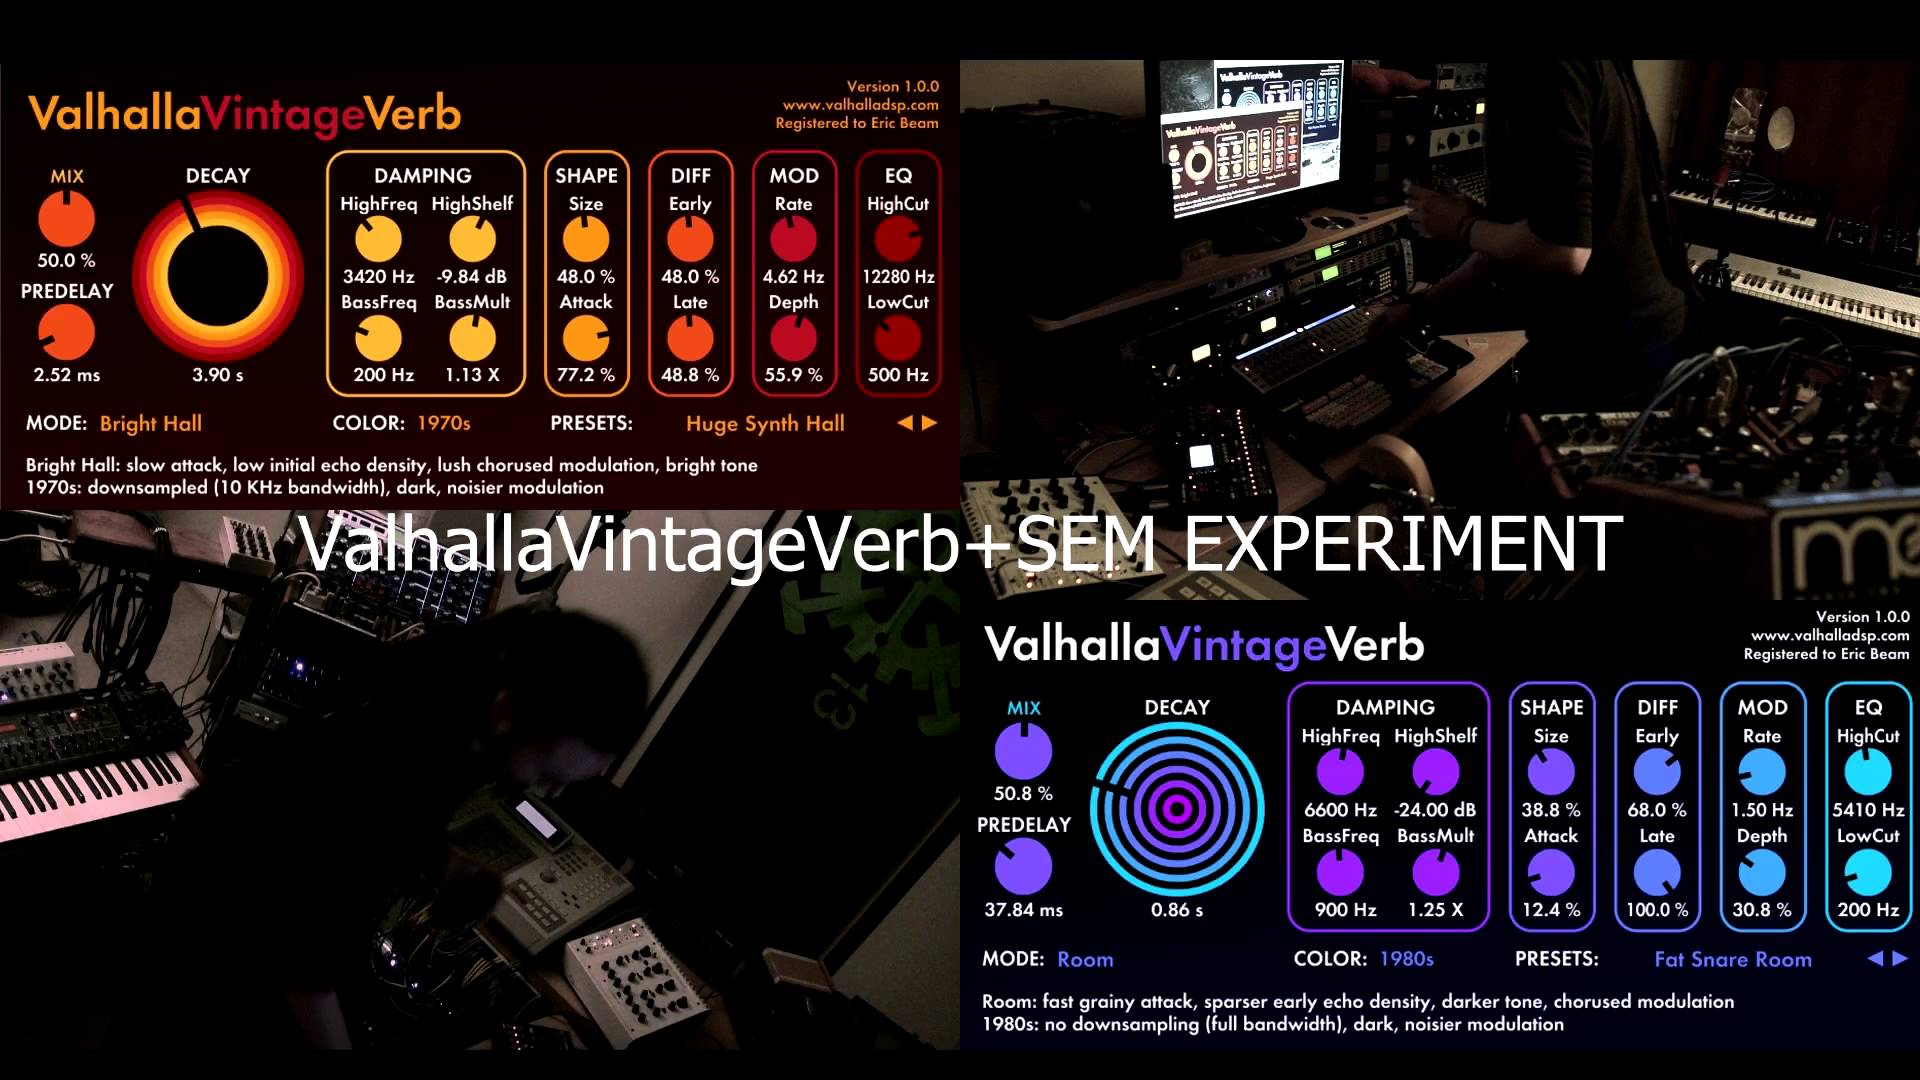 16 Step – ValhallaVintageVerb + Synths – Experiment